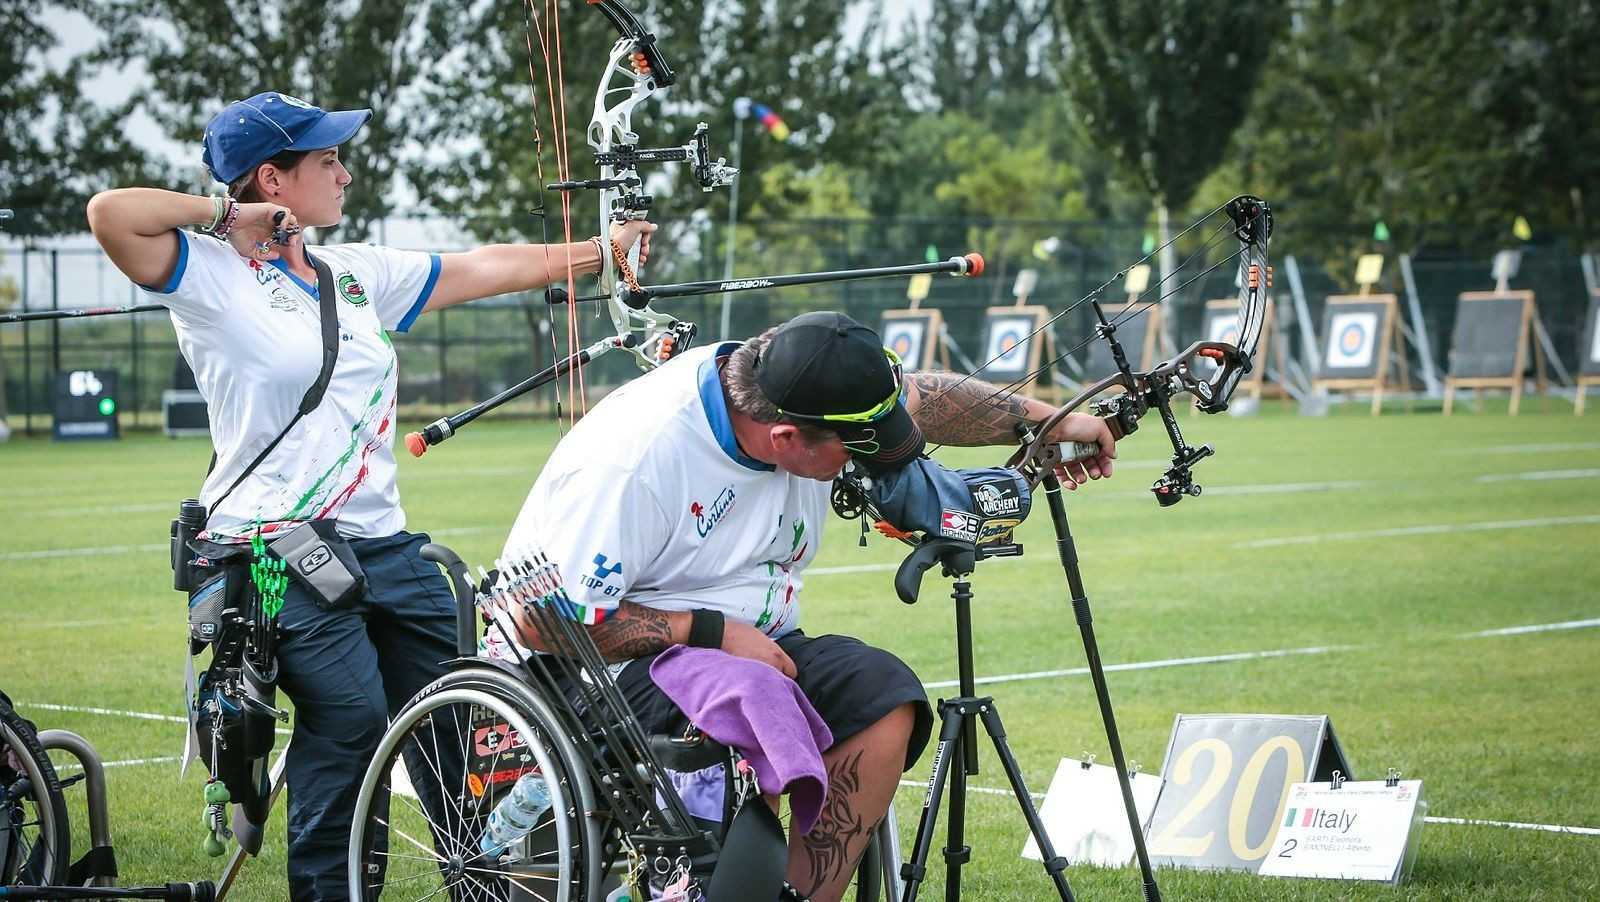 Eleanora Sarti and Alberto Simonelli broke the match play world record today ©World Archery